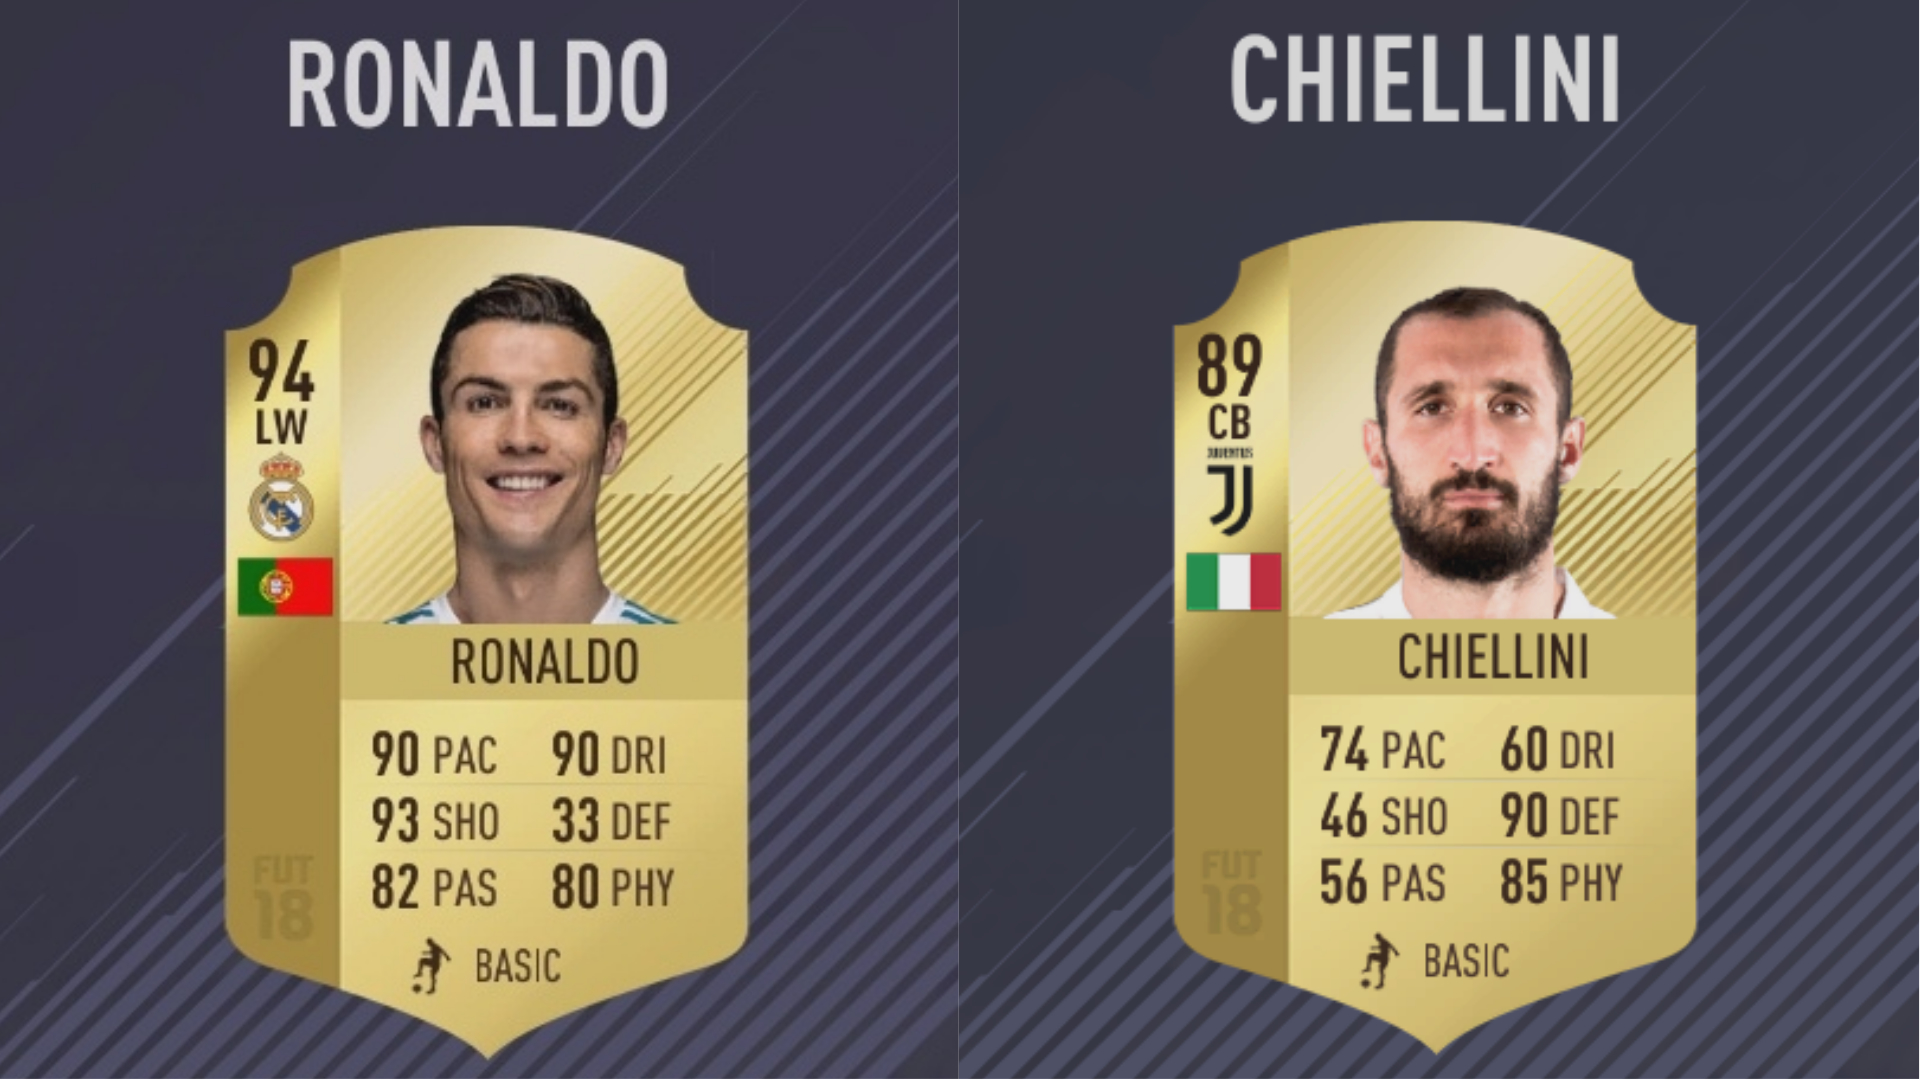 Cristiano Ronaldo and Giorgio Chiellini's Fifa 18 ratings cards